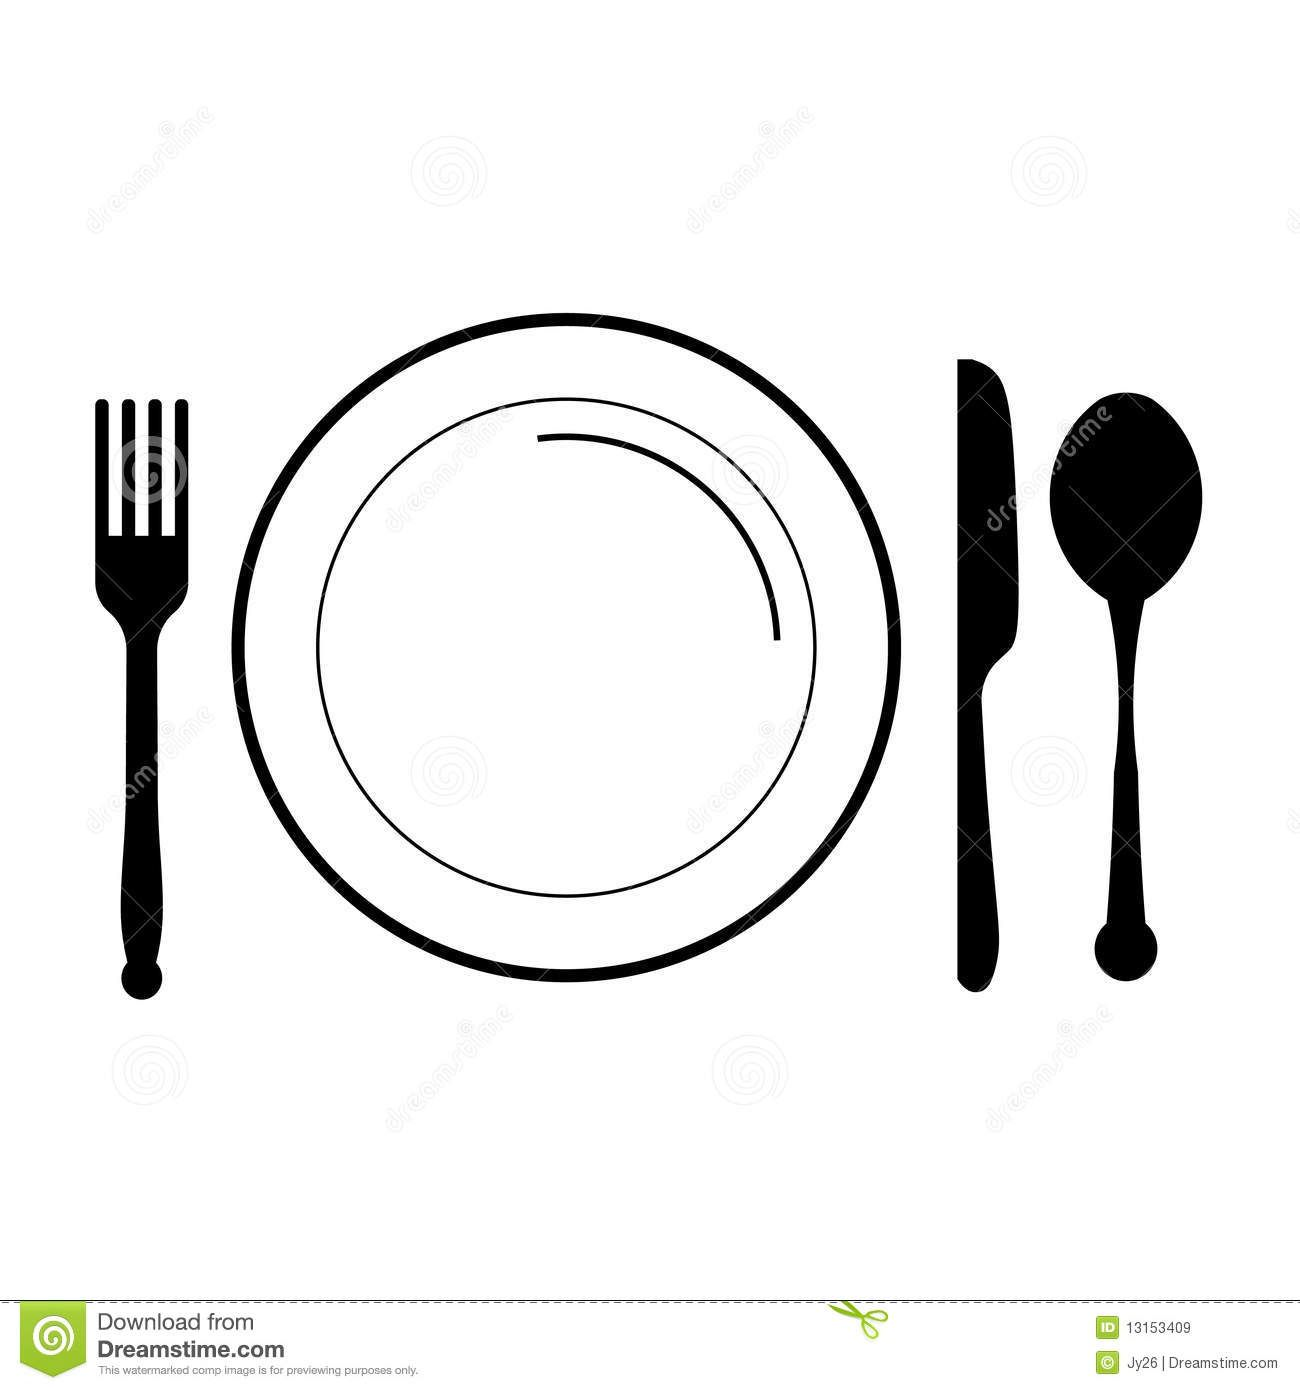 small resolution of plate fork knife clip art vector icon illustration of plate with fork knife spoon